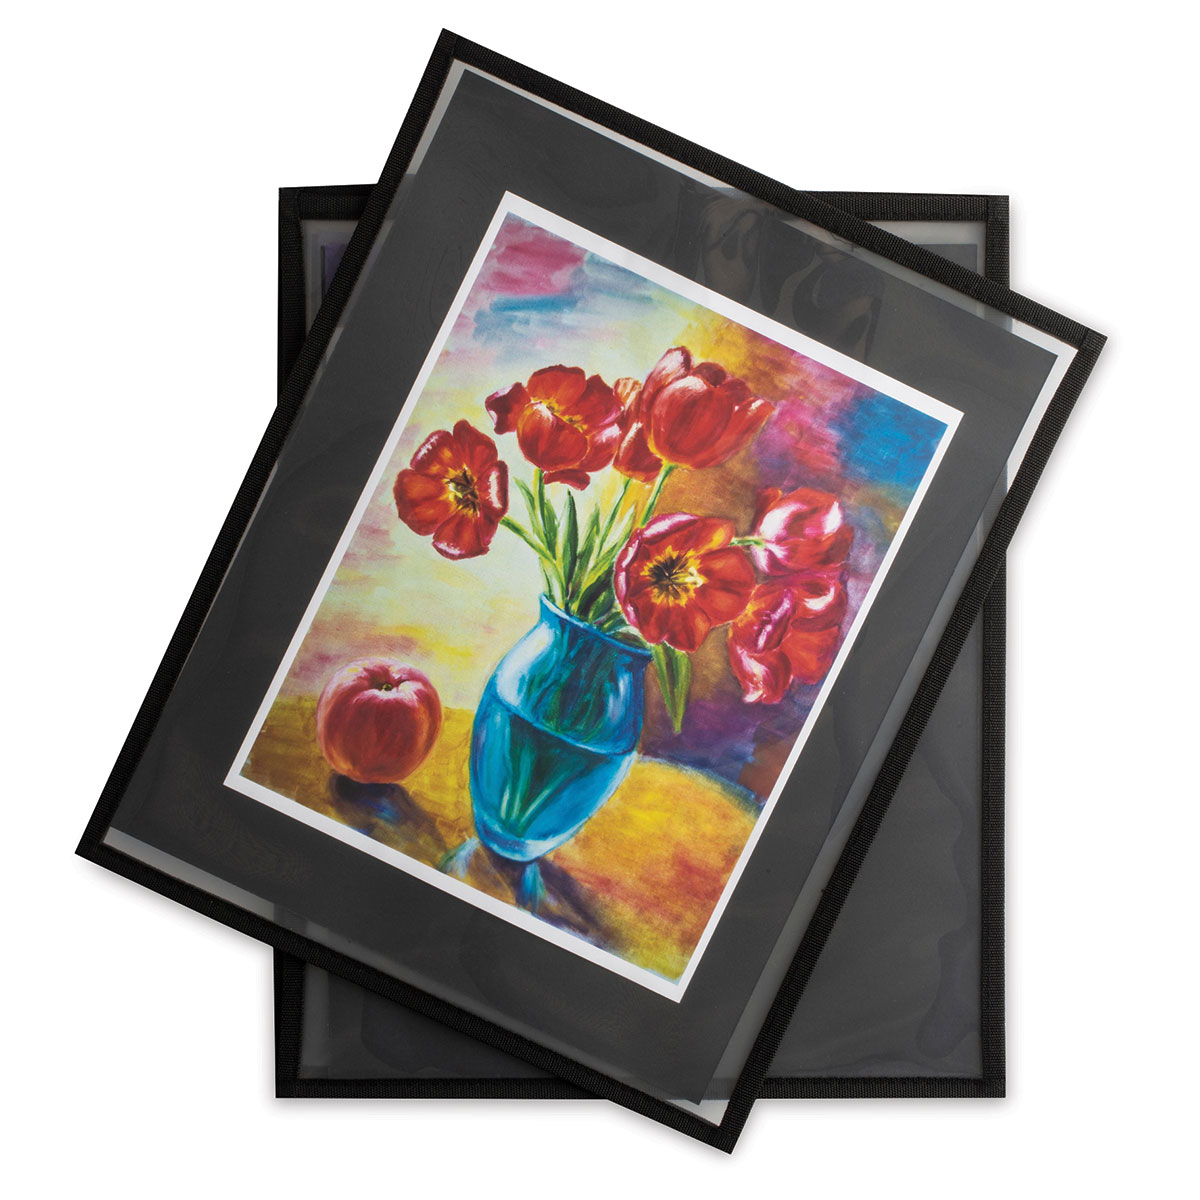 Protect 8/'/'x 10/'/' Preserve and Present Images, Clear Lineco Digital Output Print Sleeves 25 Sheets Archival Quality Acid-Free PVC-Free